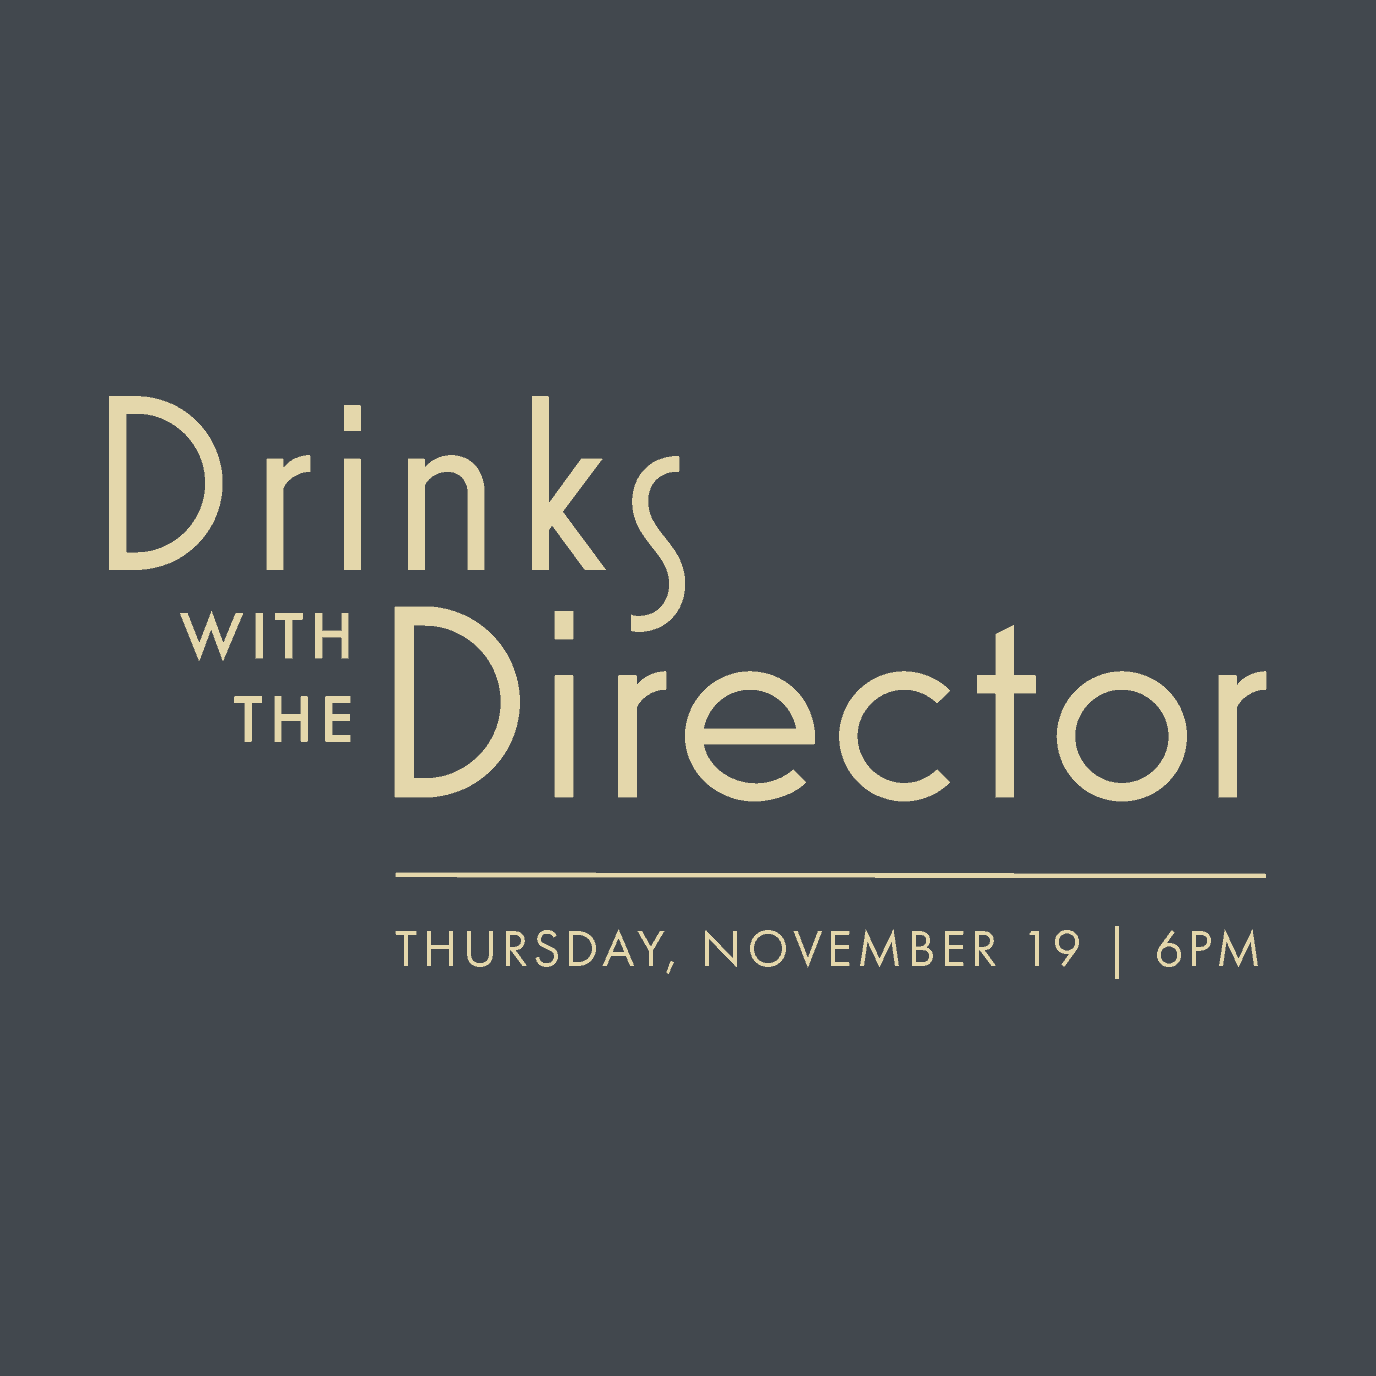 Brown background, yellow letters, Drinks with the Director, Thursday, November 19, 2020